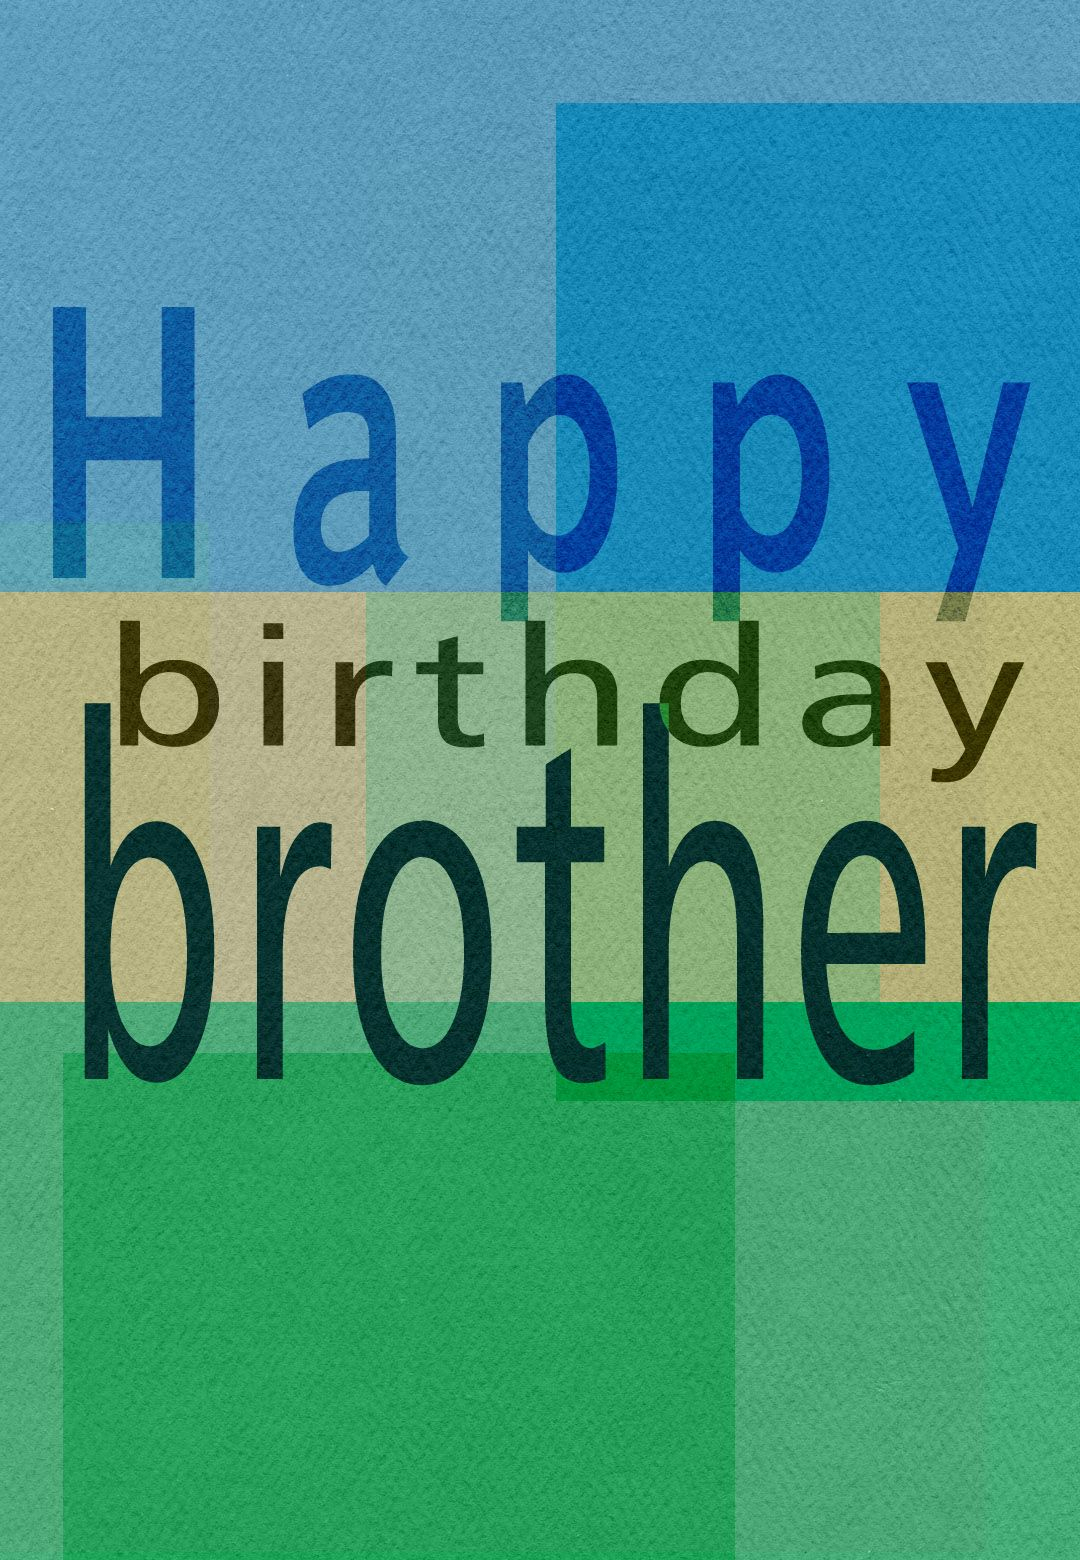 Free Printable Greeting Cards   Gift Ideas   Pinterest   Birthday - Free Printable Birthday Cards For Brother